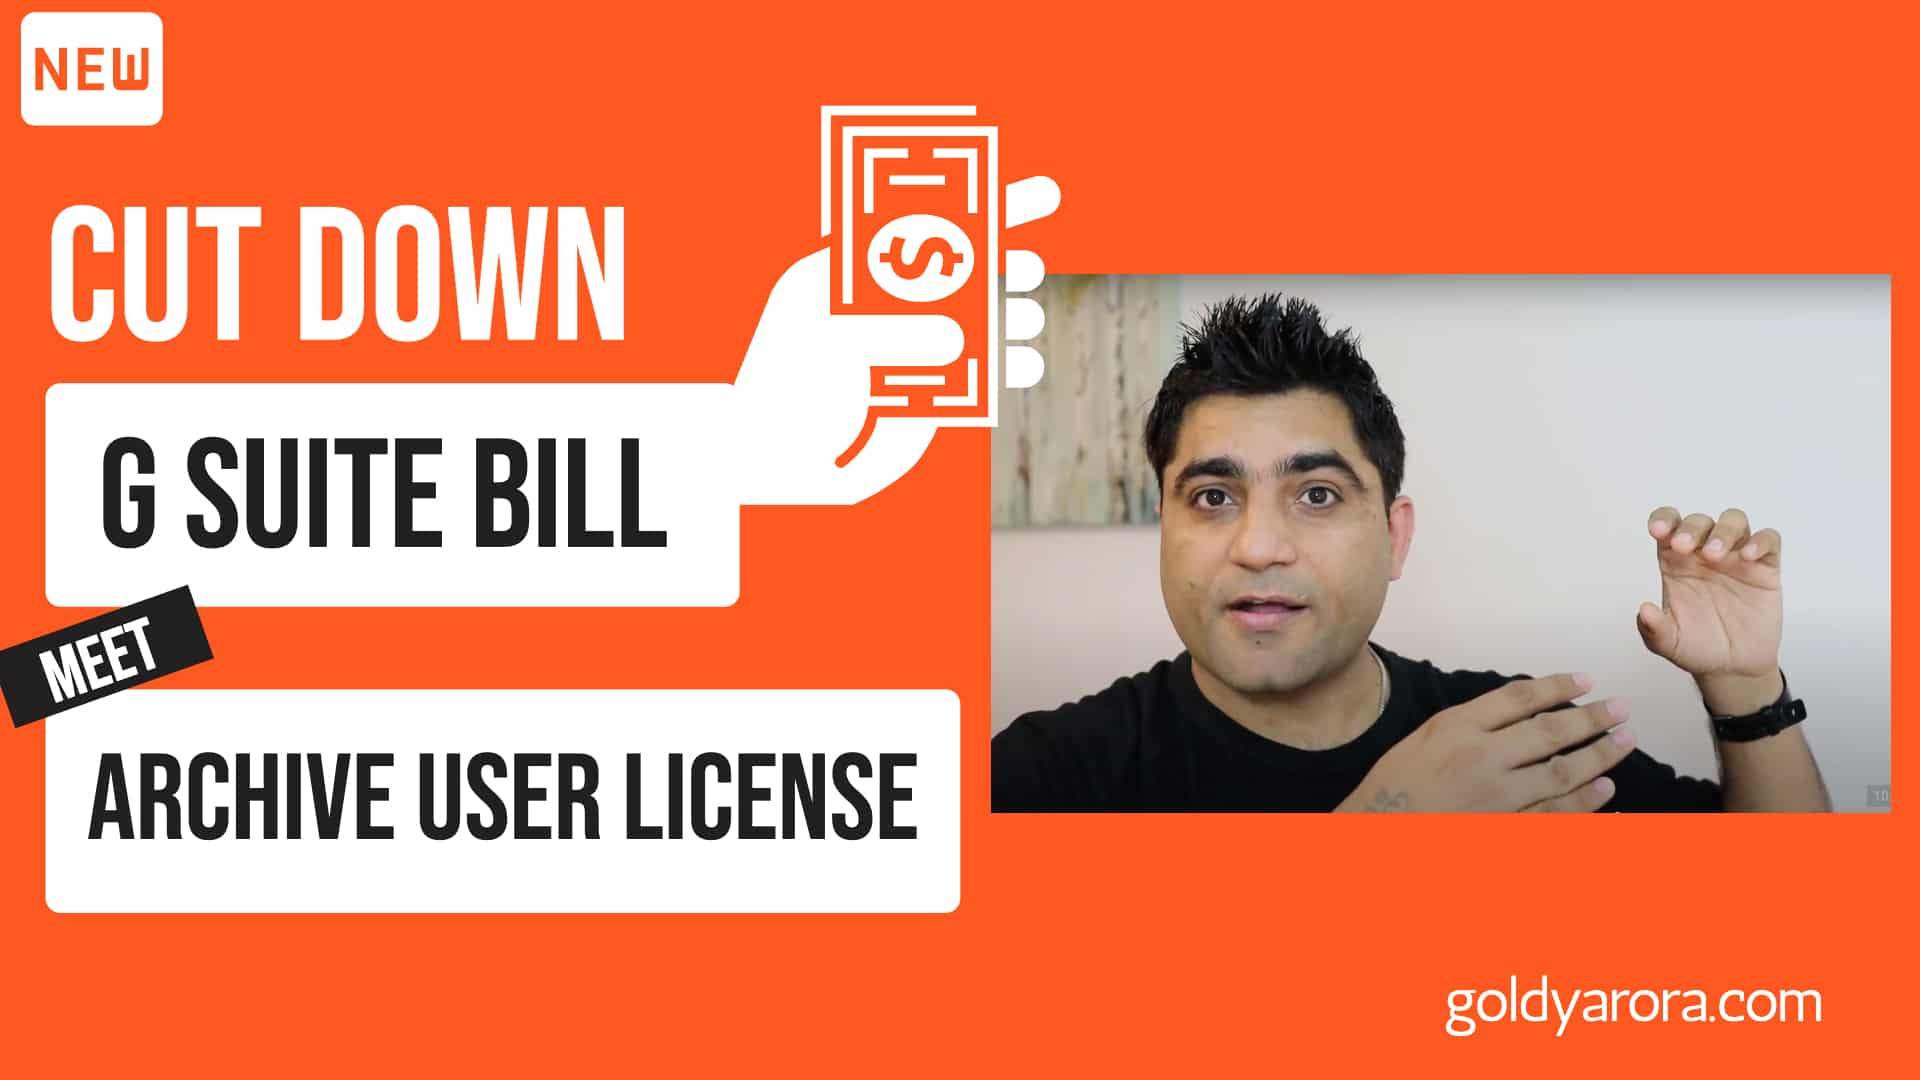 Cut down your Google Workspace bill with archive user license